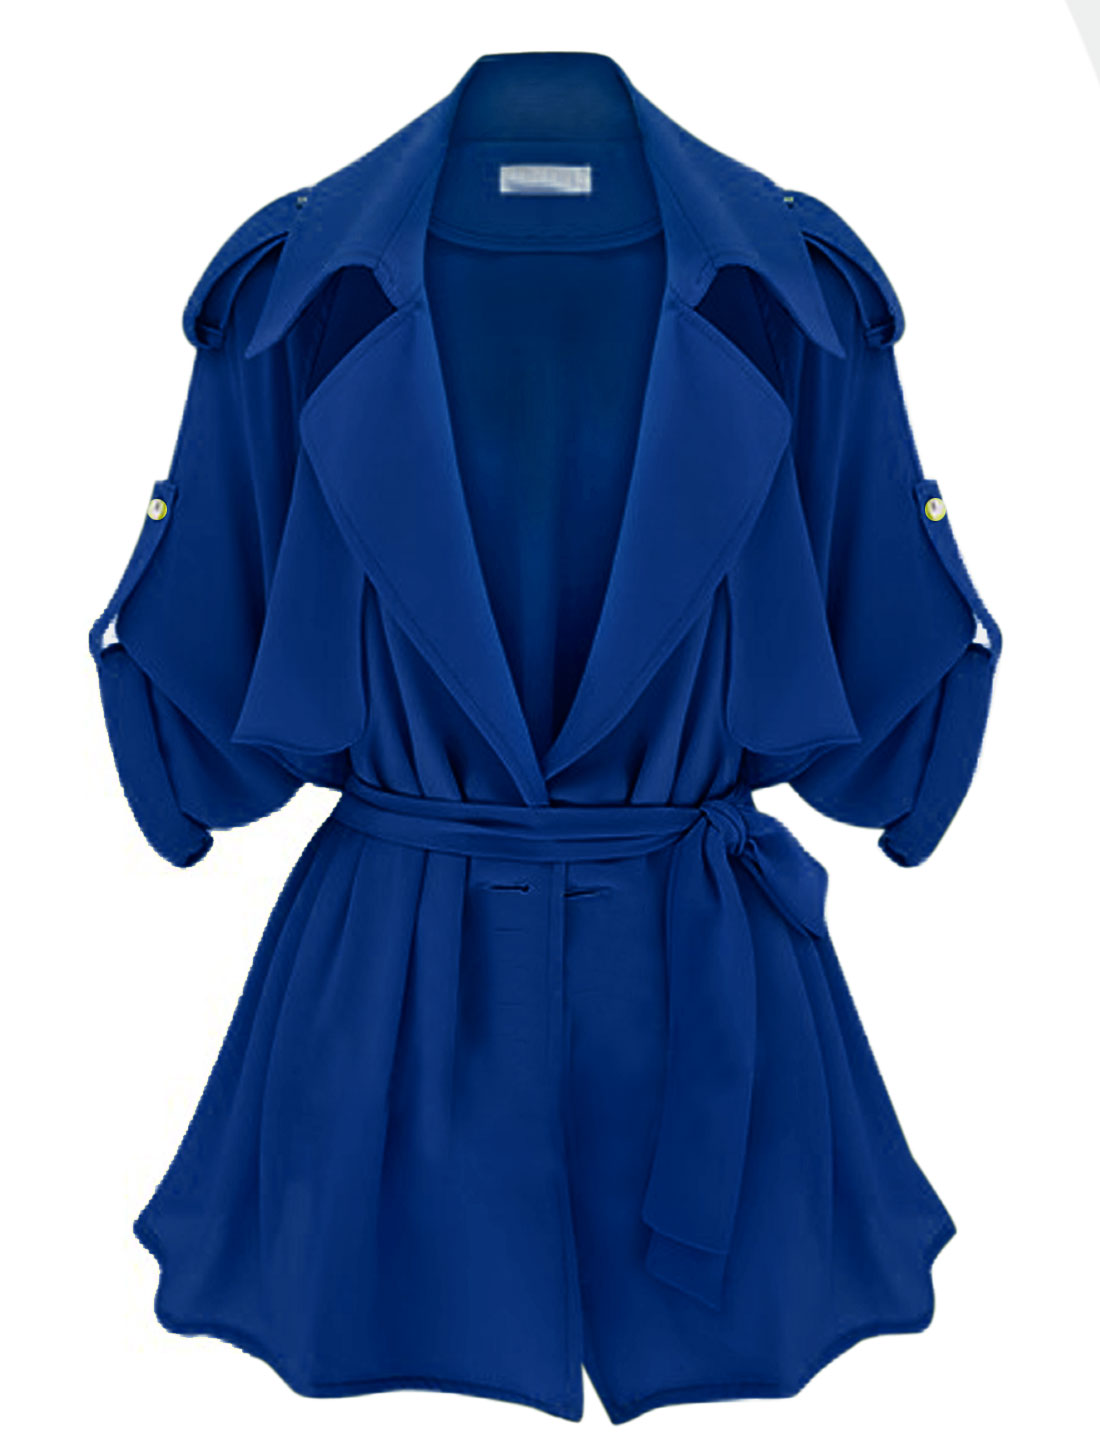 Lady Notched Lapel Long Raglan Sleeve Cape Style Fashion Thin Jacket Royal Blue S